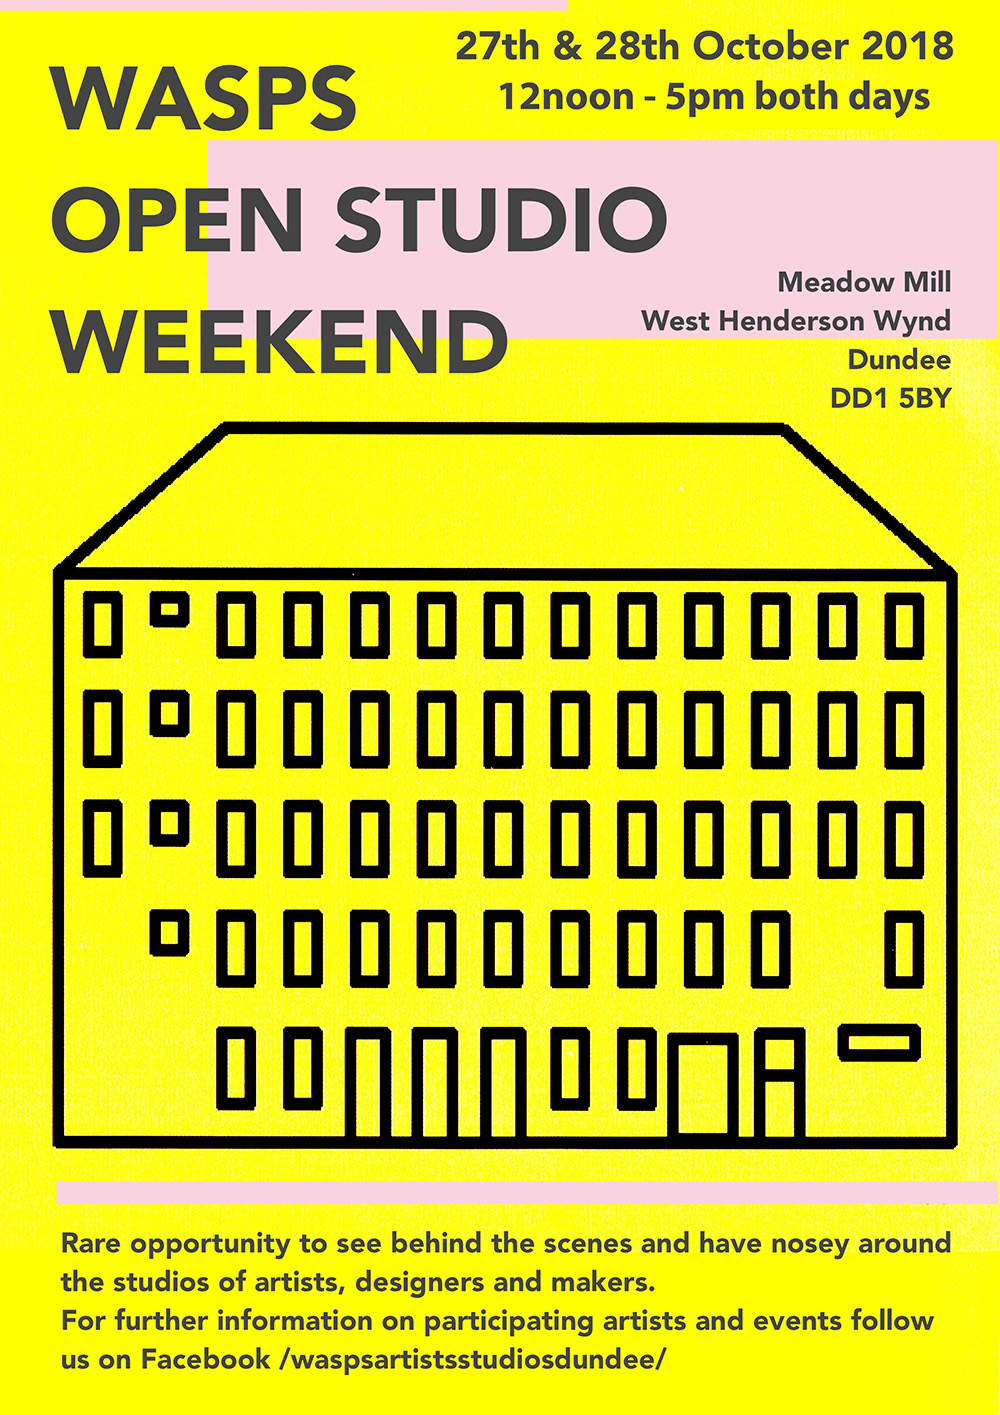 WASPS Open Studio Weekend